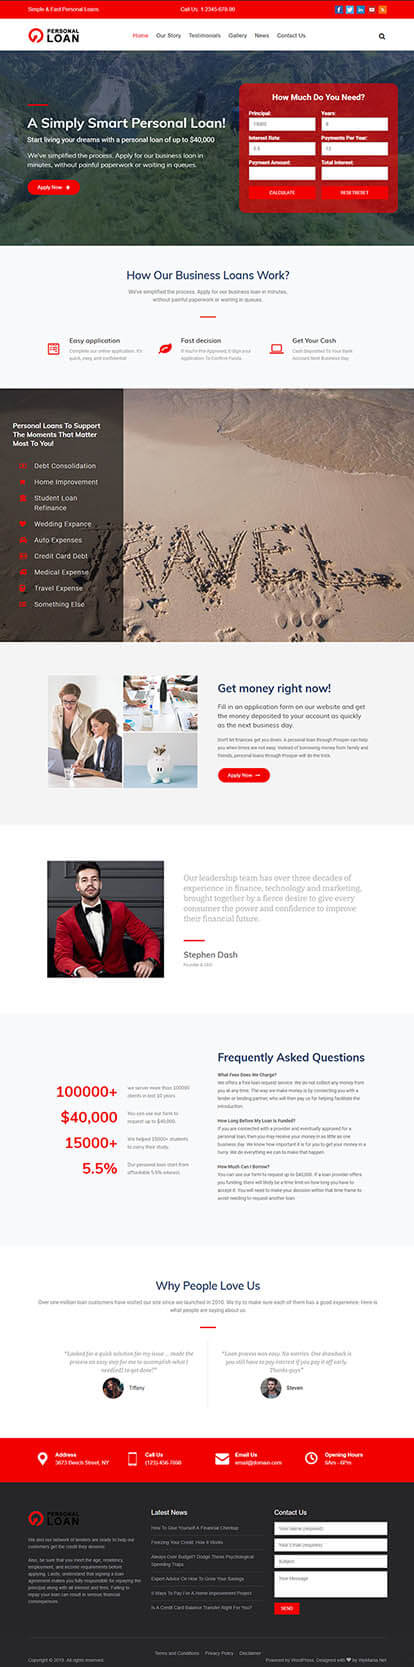 Loan Officer WORDPRESS THEME Full Demo